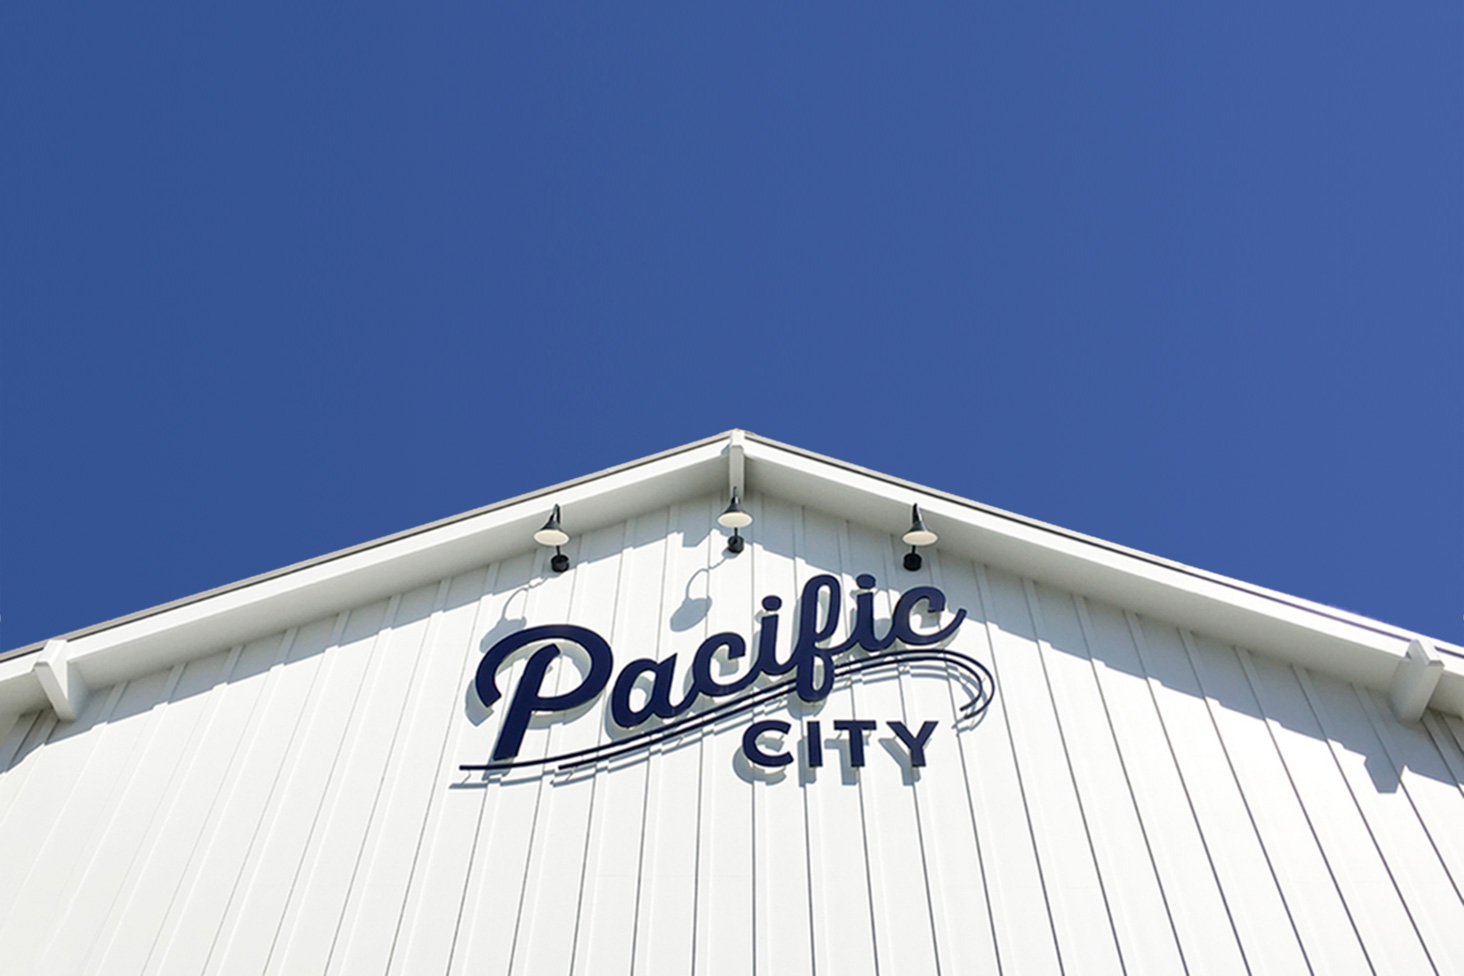 Pacific City  : Bringing the Inside, Out